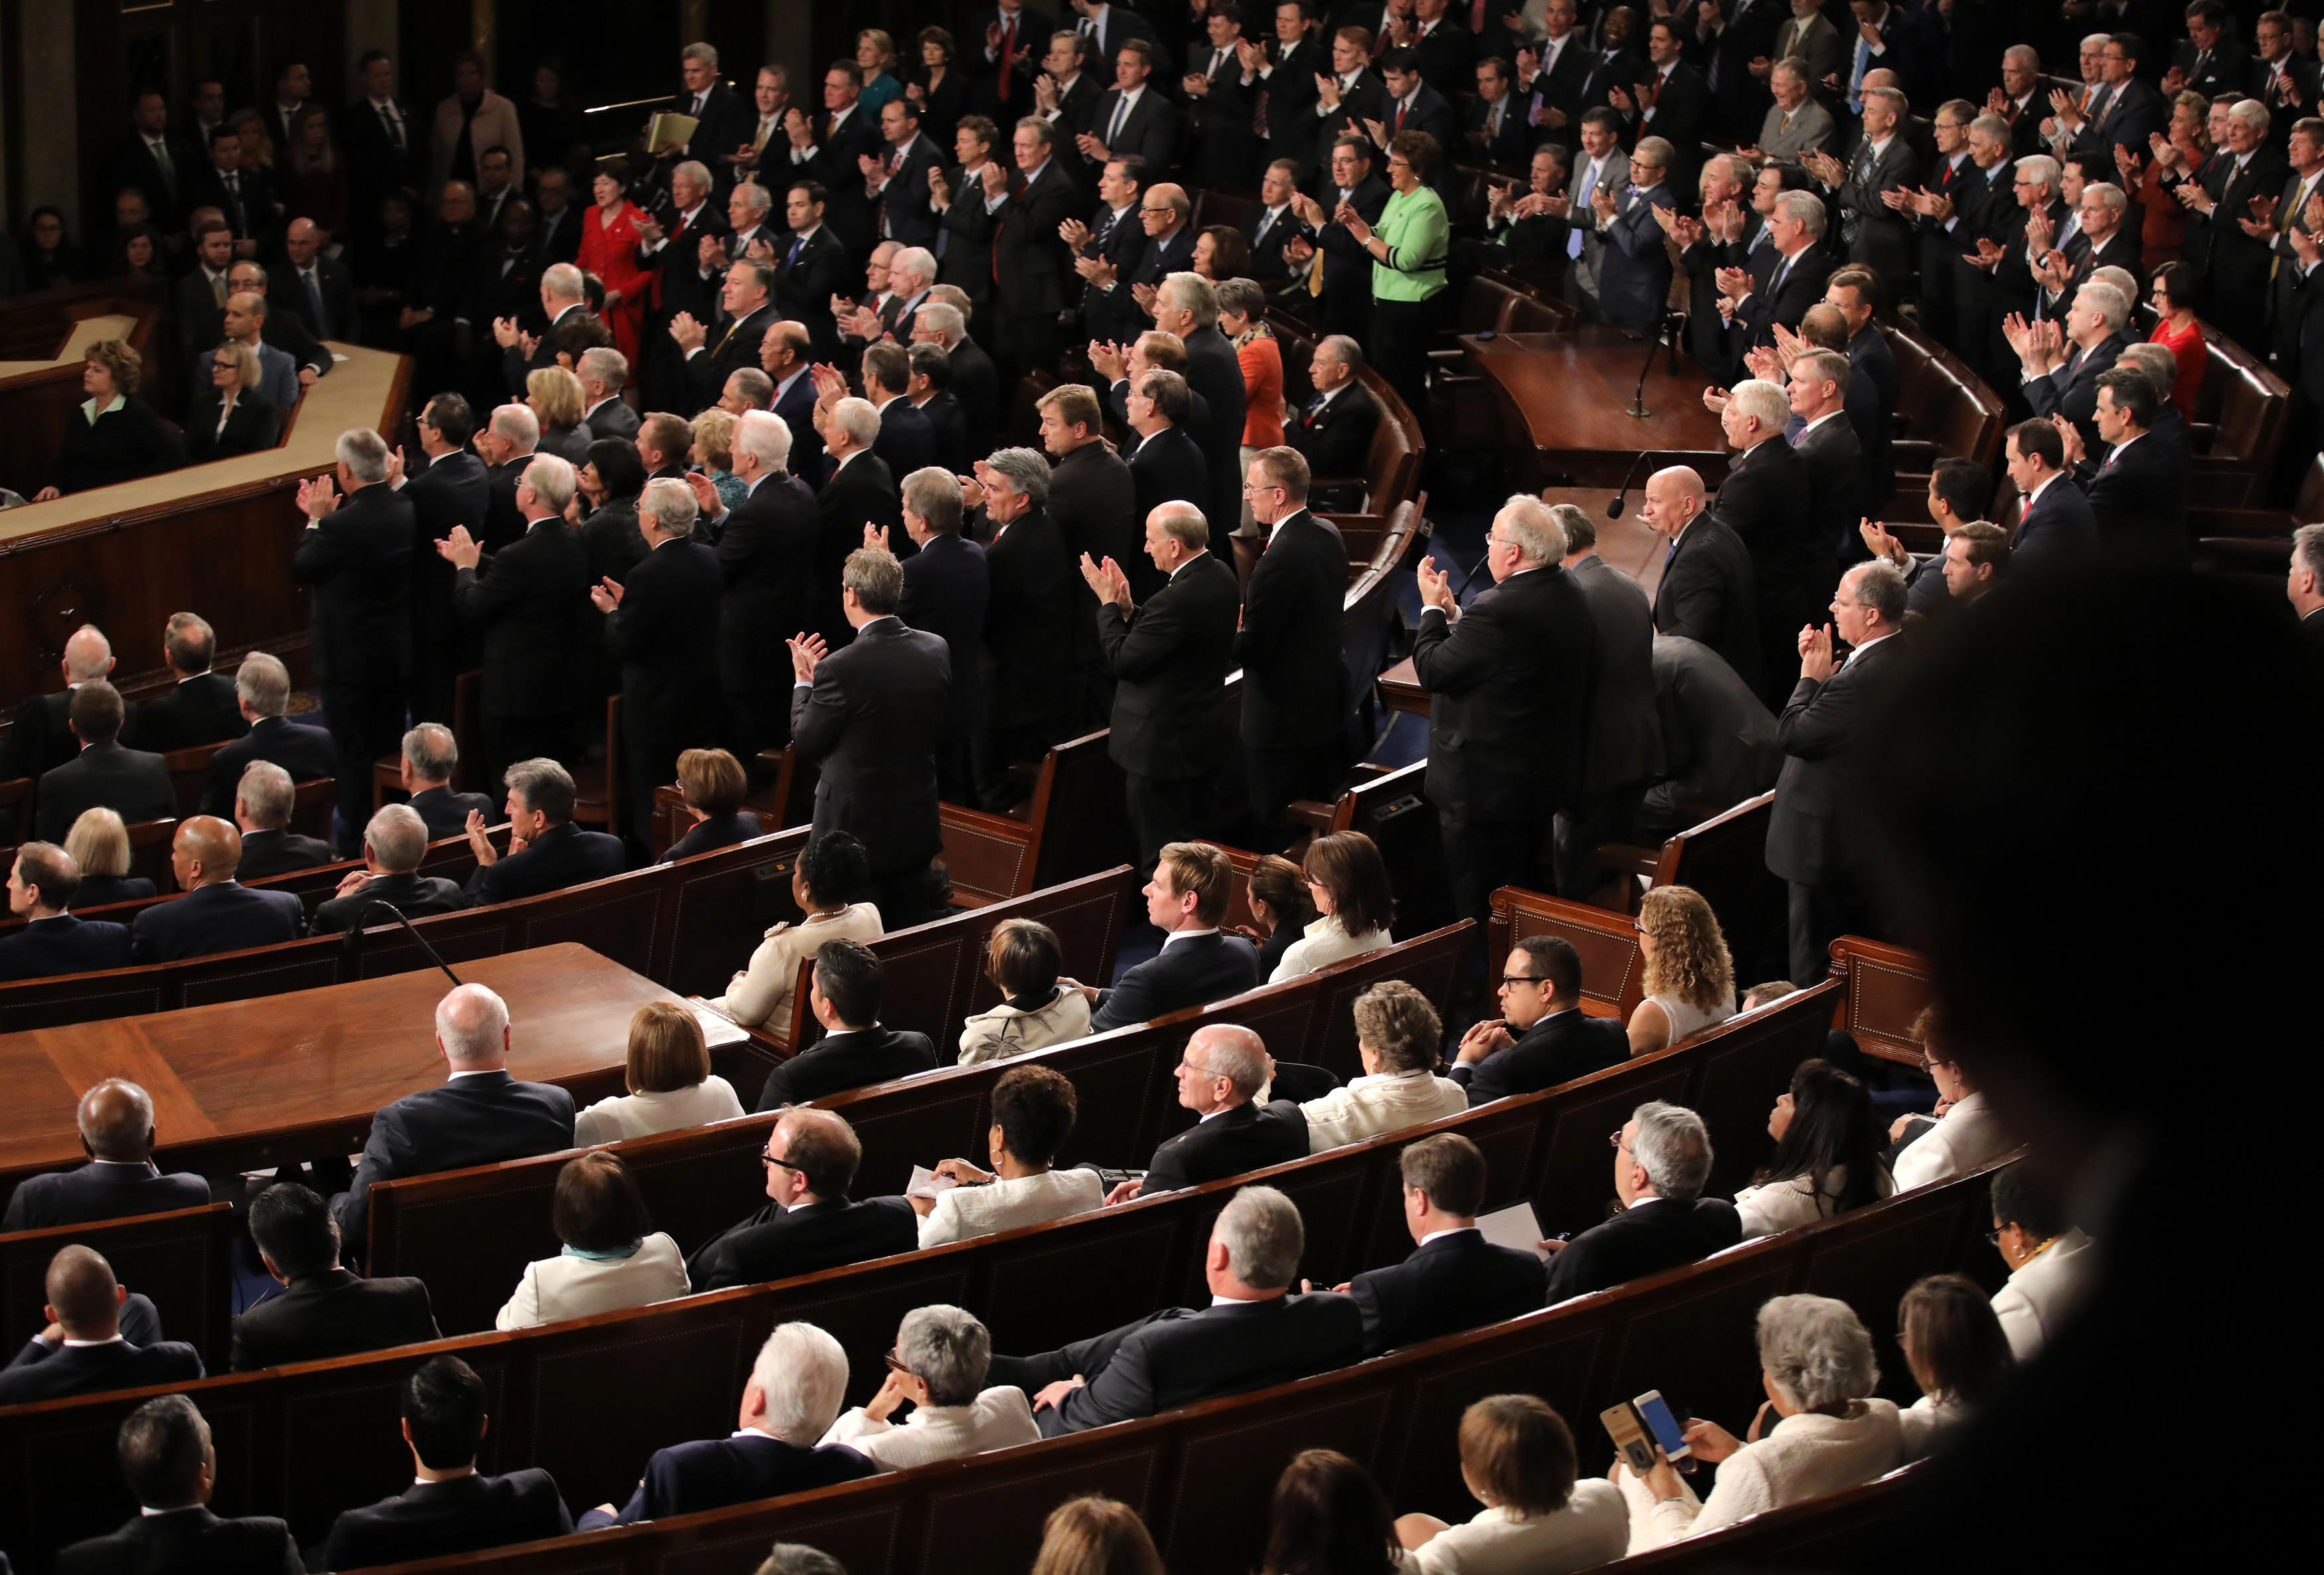 U.S. Trump Addresses Joint Session of Congress - Washington, U.S. 28/02/17 - Republican members of Congress stand and Democrats remain seated as President Donald Trump speaks. REUTERS/Carlos Barria